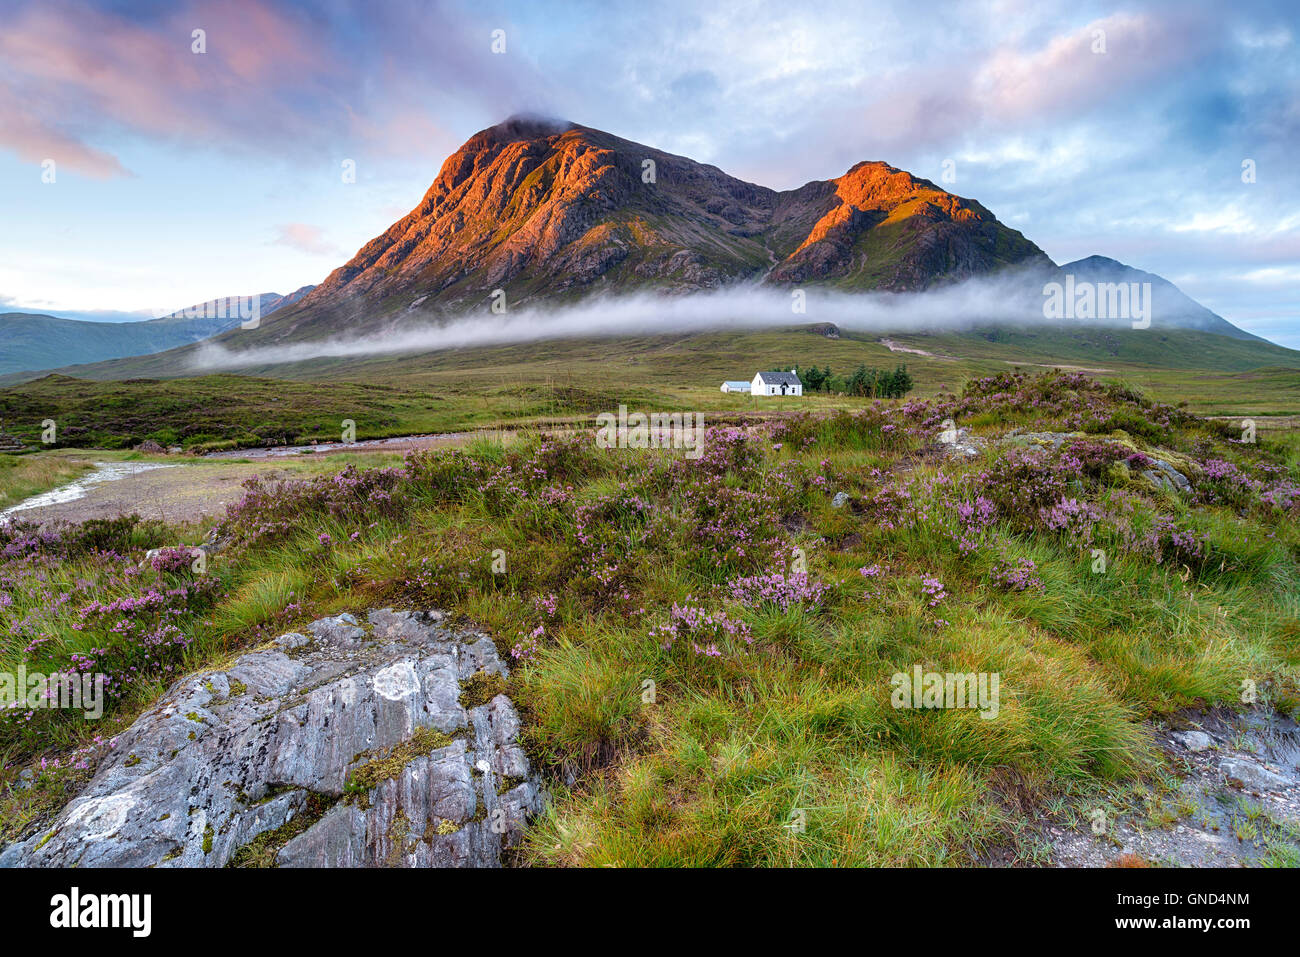 Sunrise over the mountain tops at Glencoe in the highlands of Scotland - Stock Image